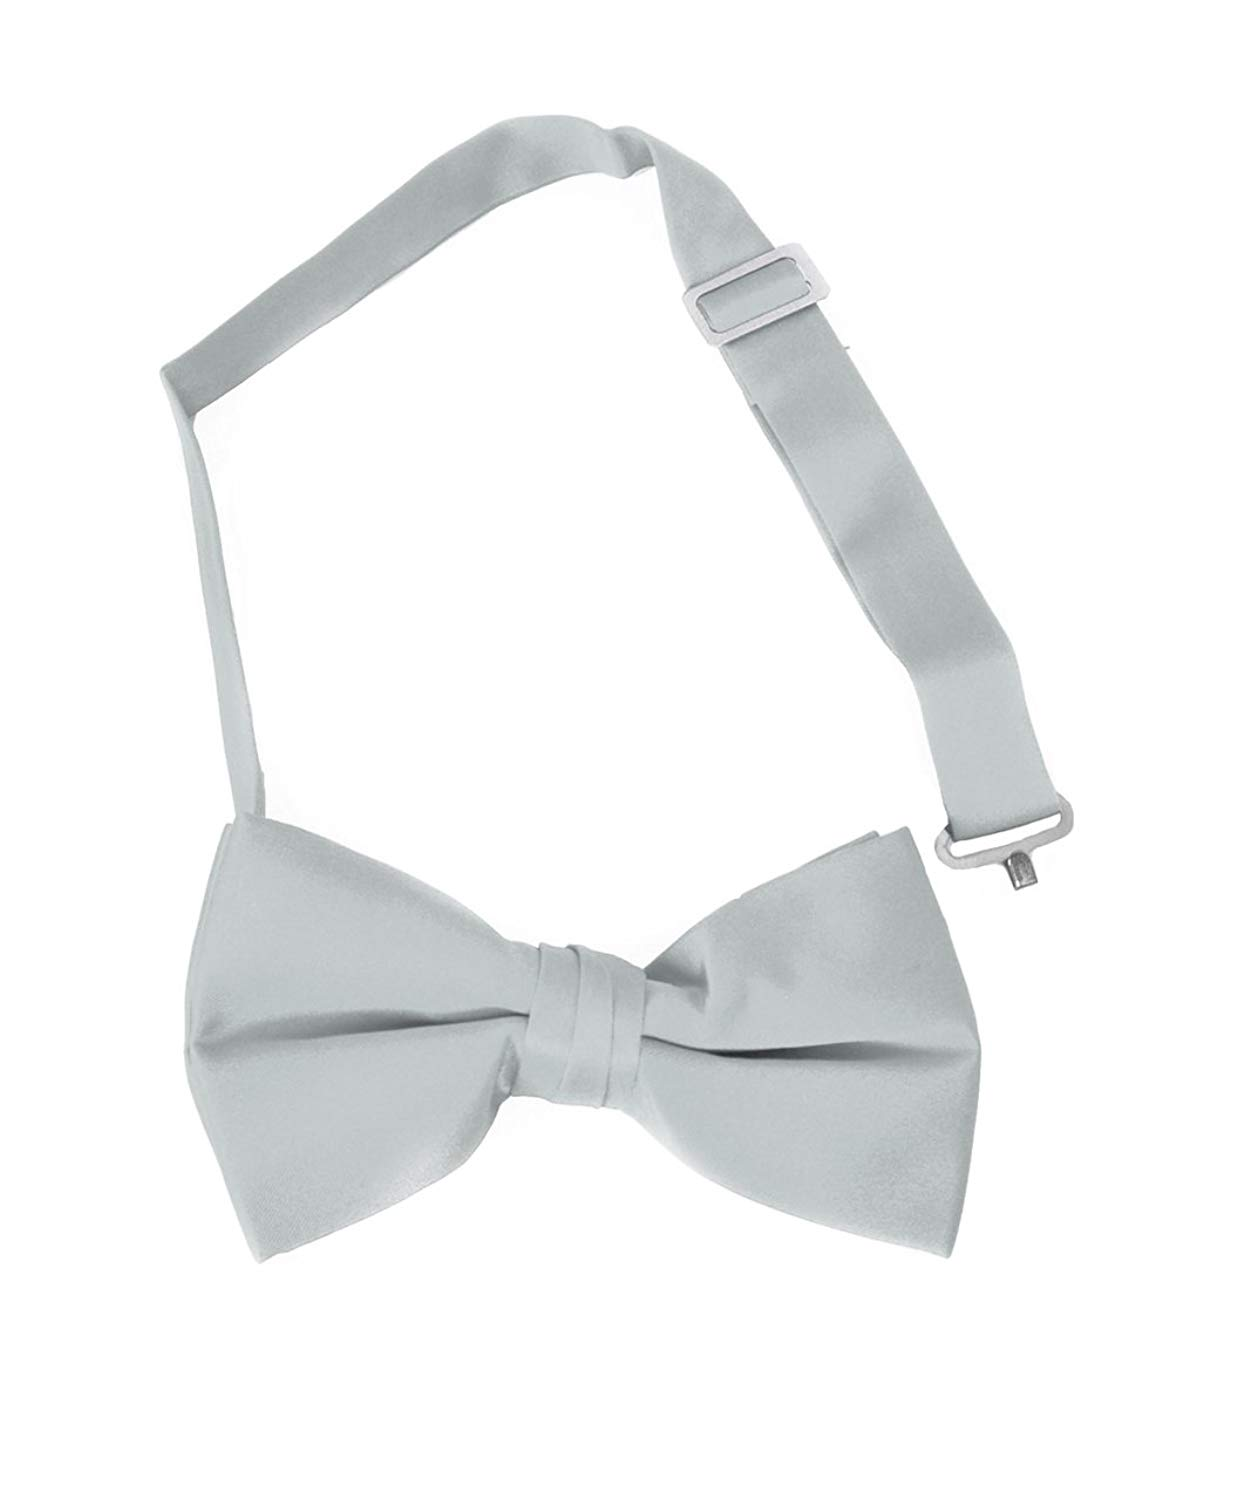 Adjustable Pre Tied Bowties Necktie Mens Bow Tie For Wedding Party Dinners